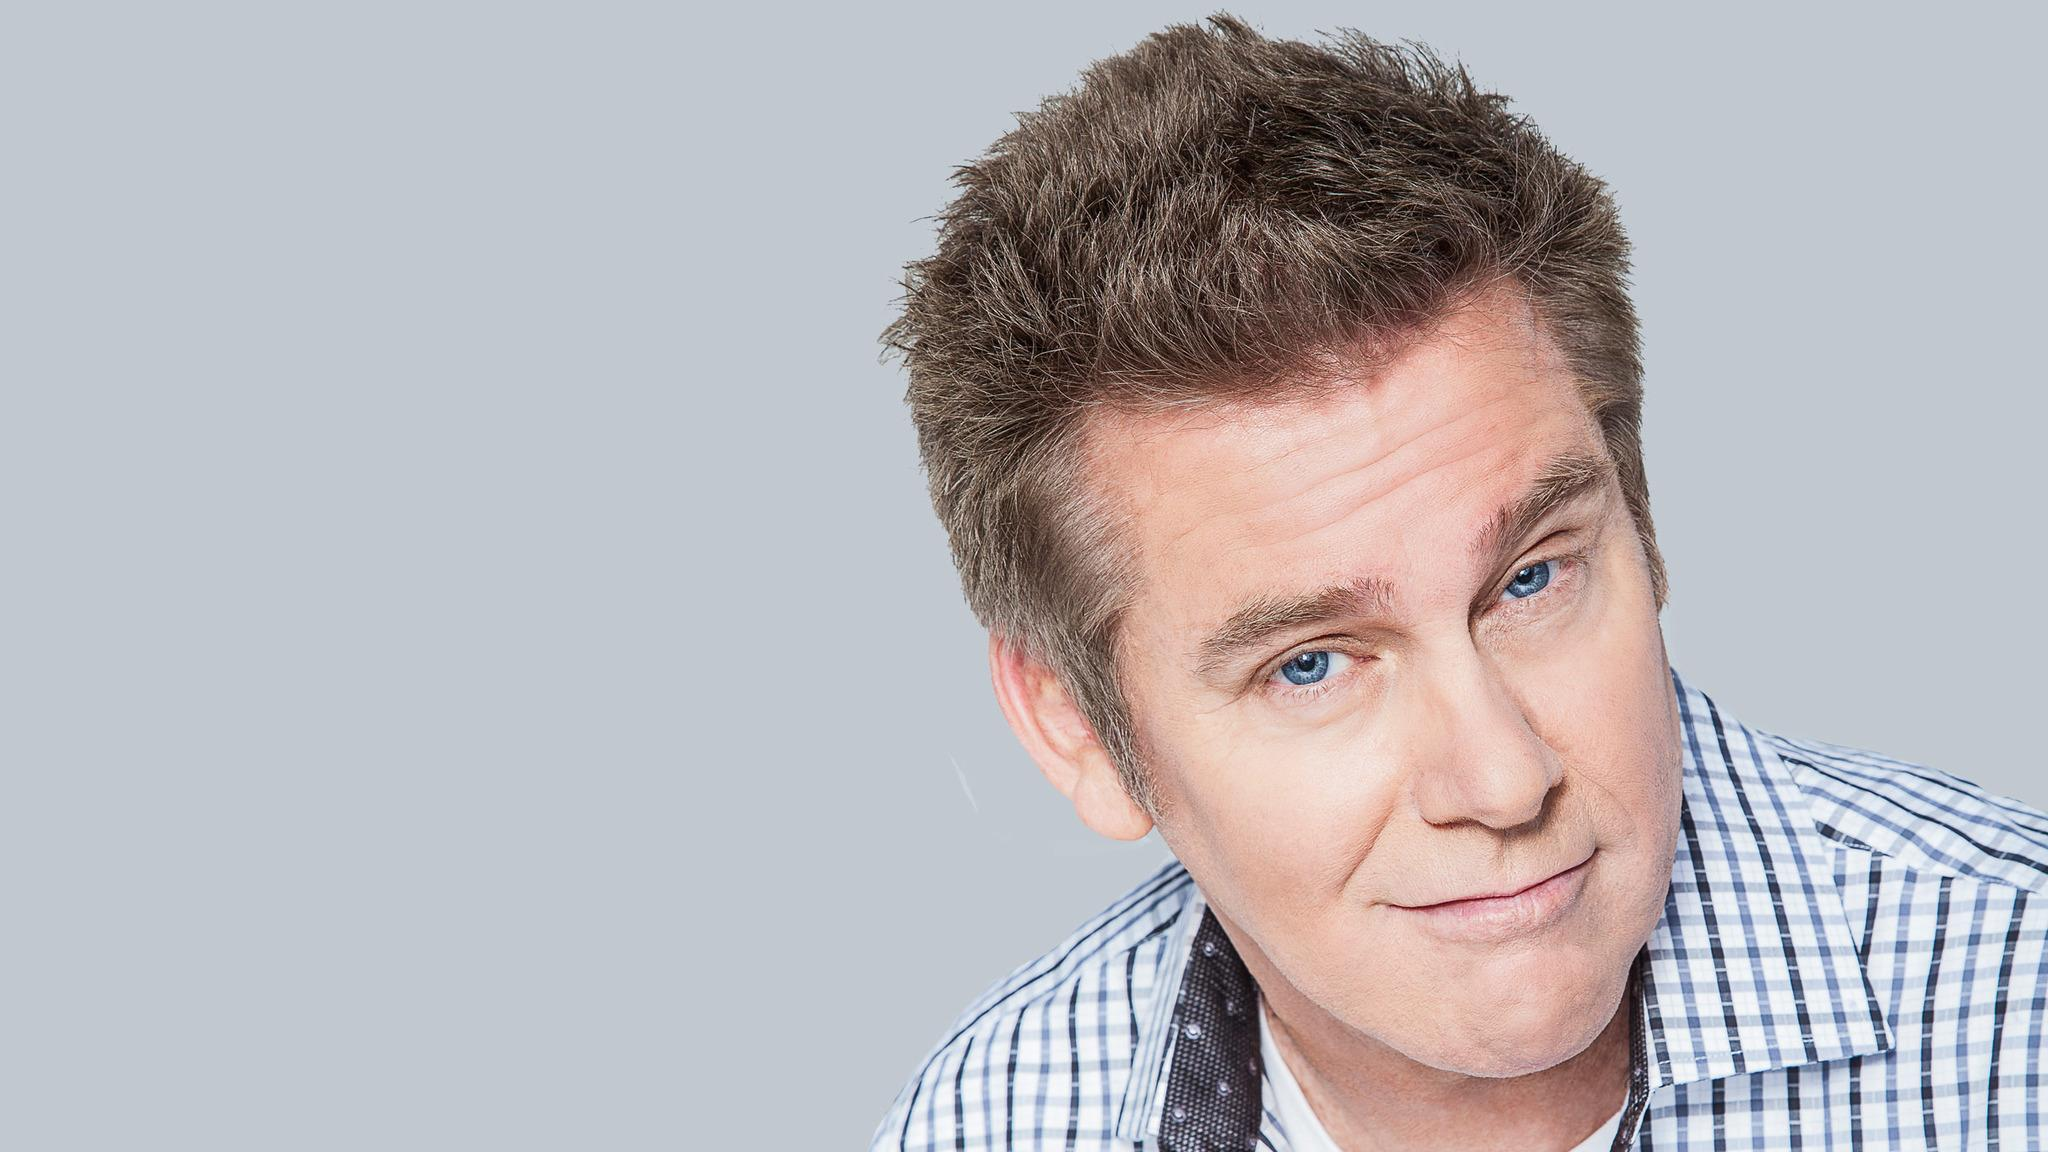 Brian Regan at Toyota Center Kennewick - Kennewick, WA 99336